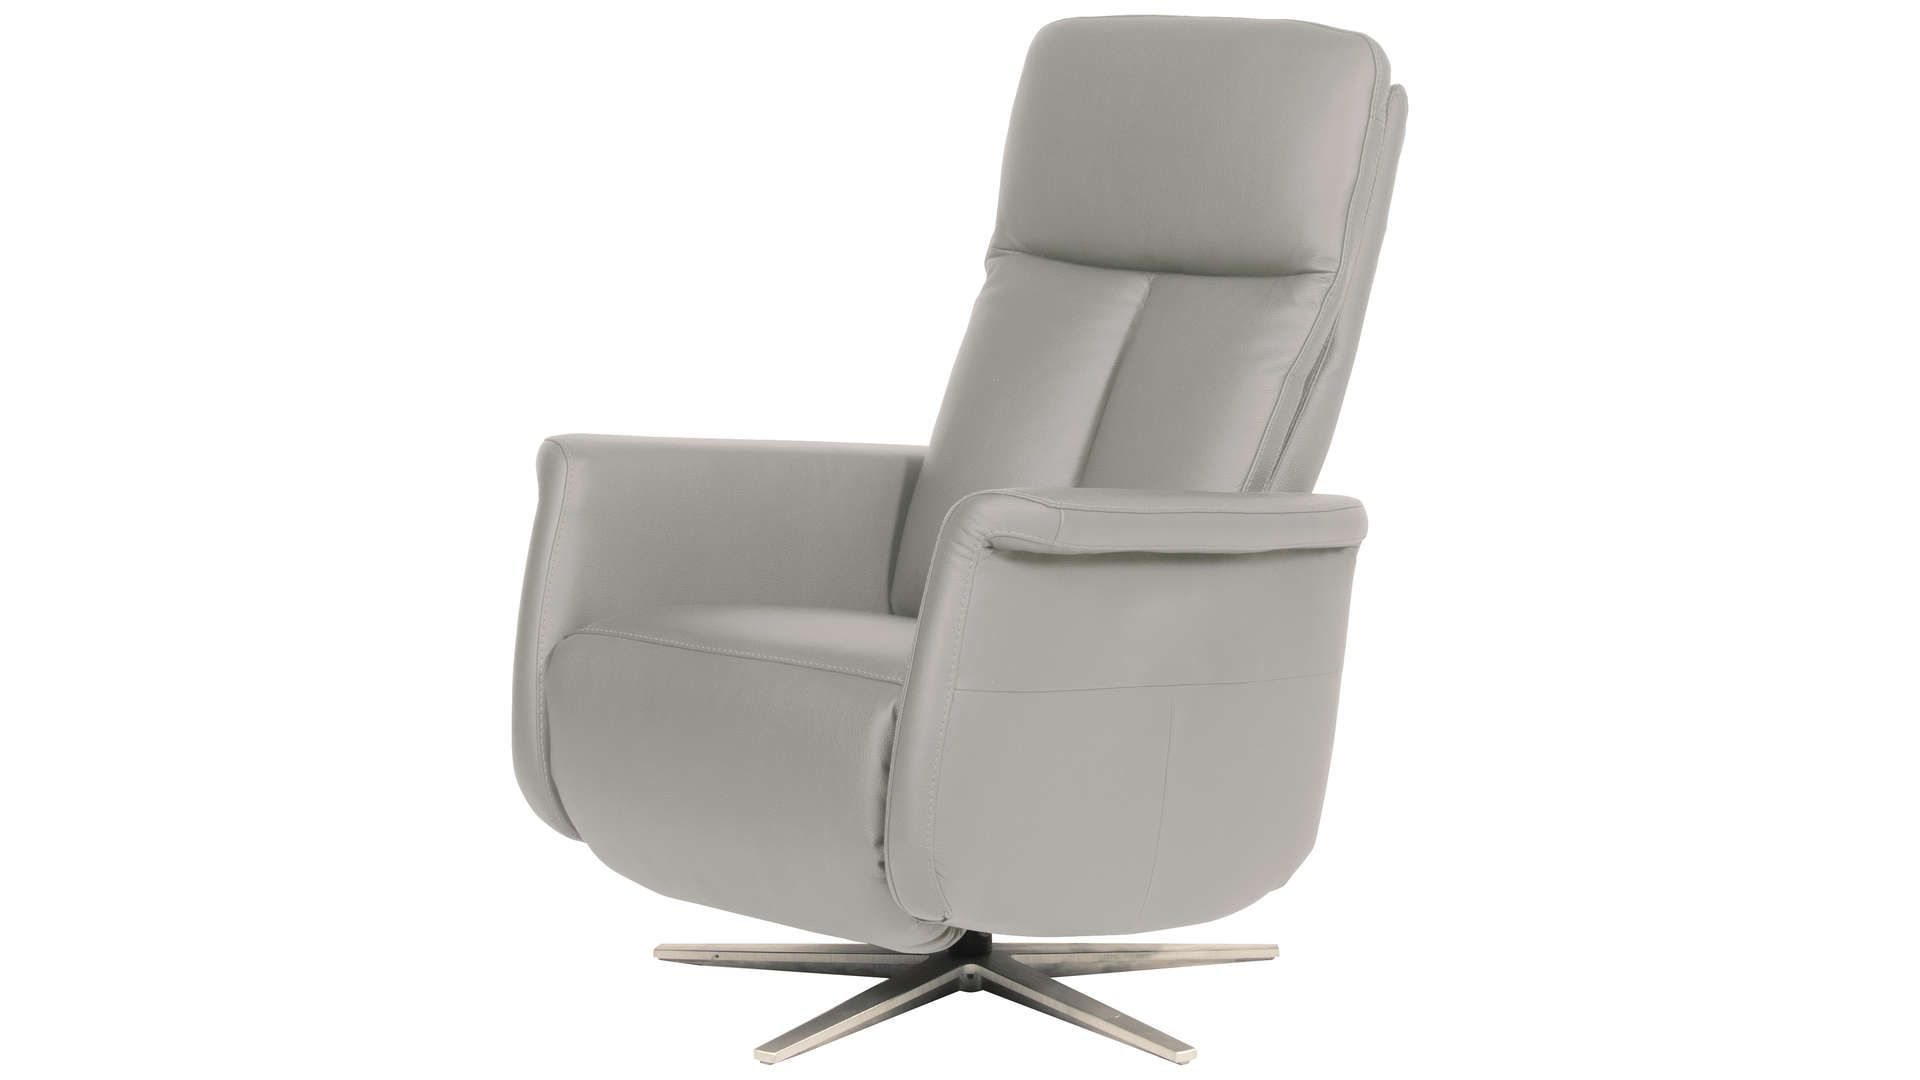 Fauteuil Relax 100 Cuir Lindy Fauteuil Relax Fauteuil Relax